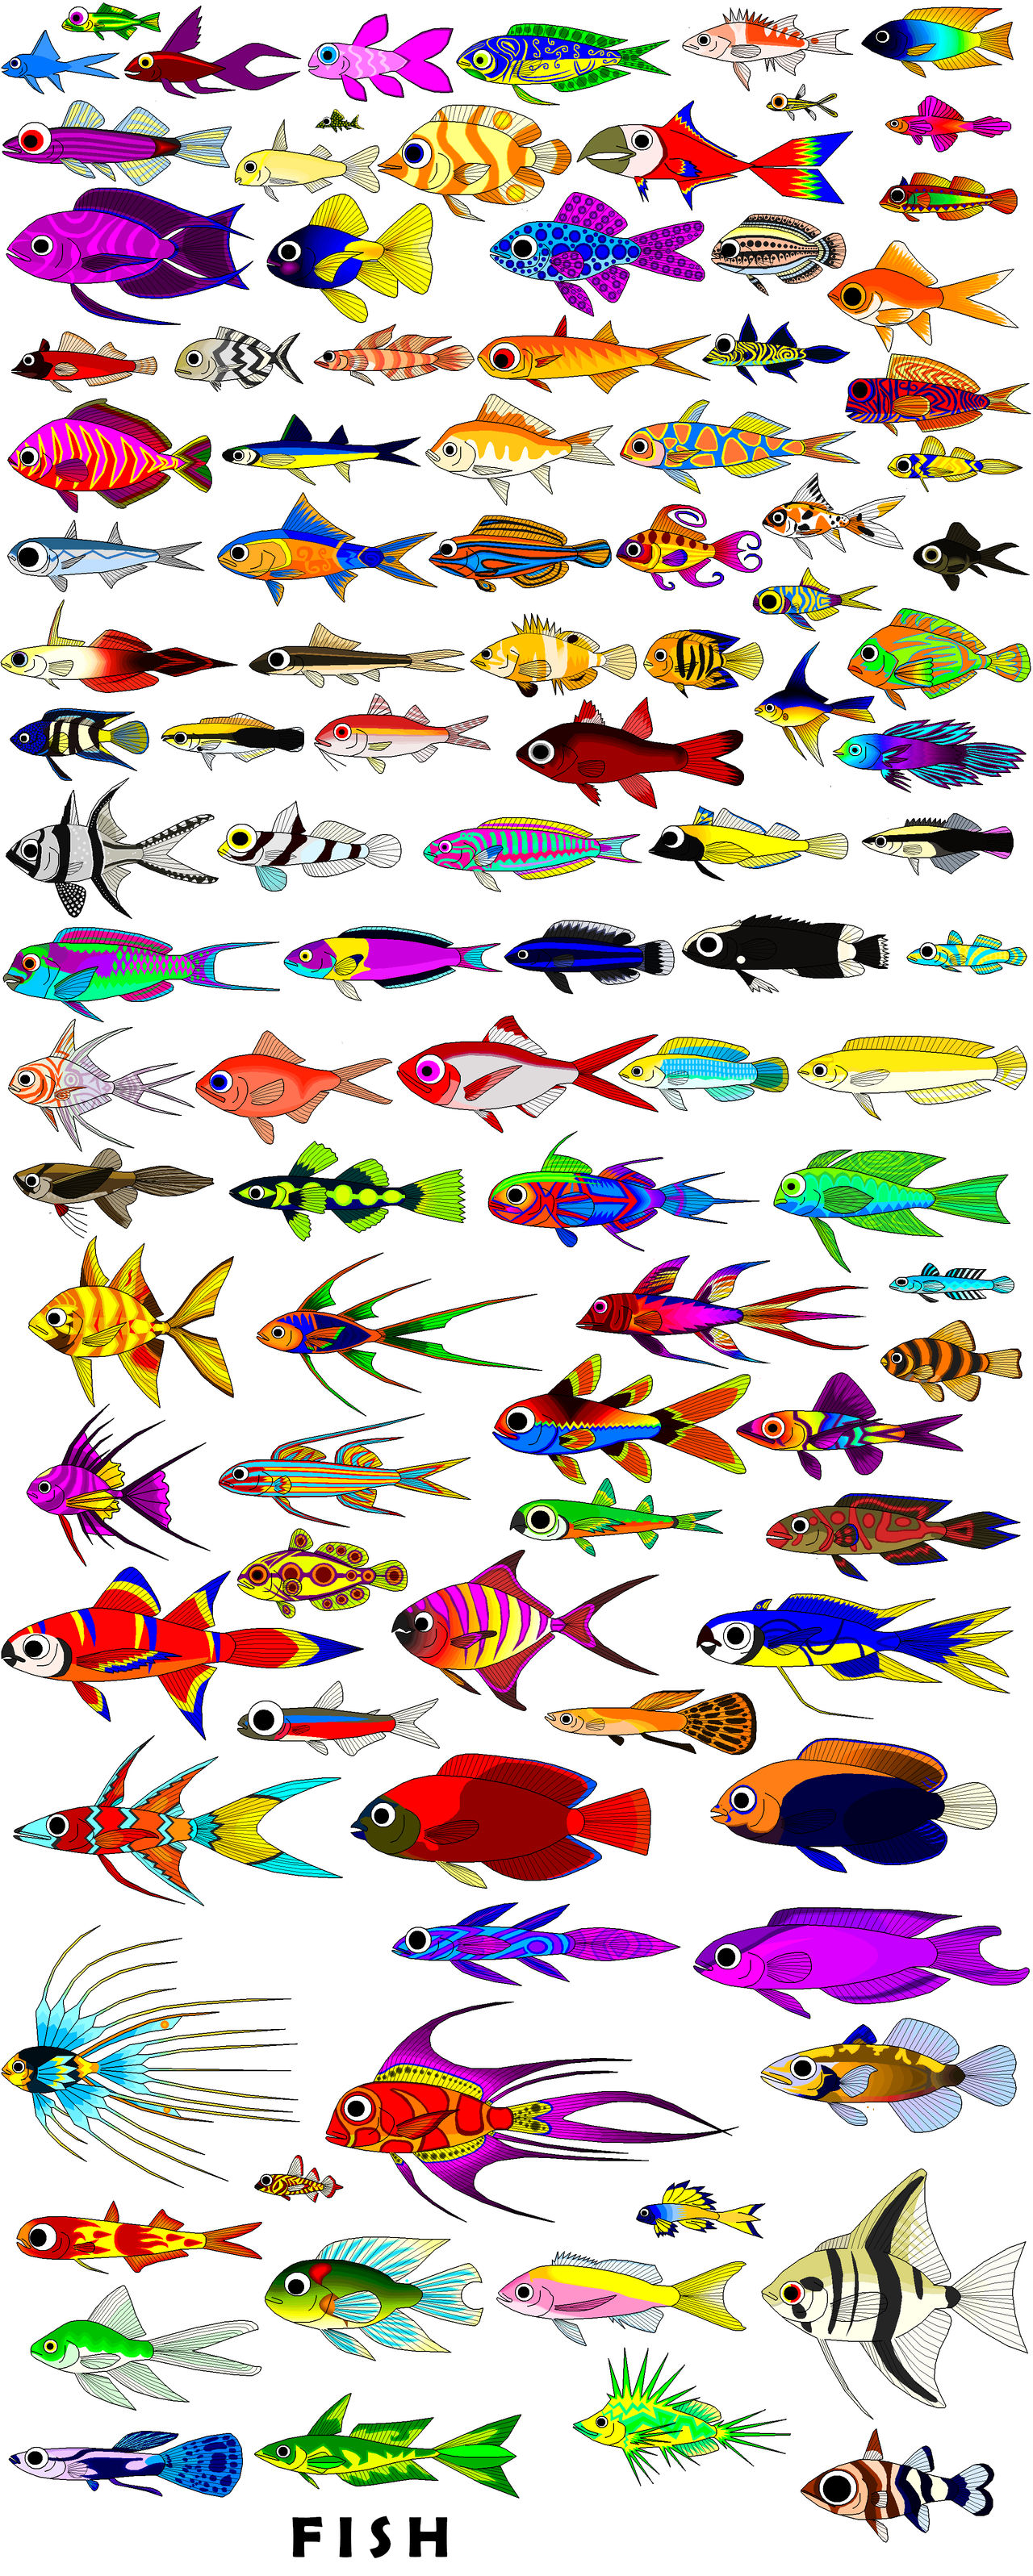 all the fish